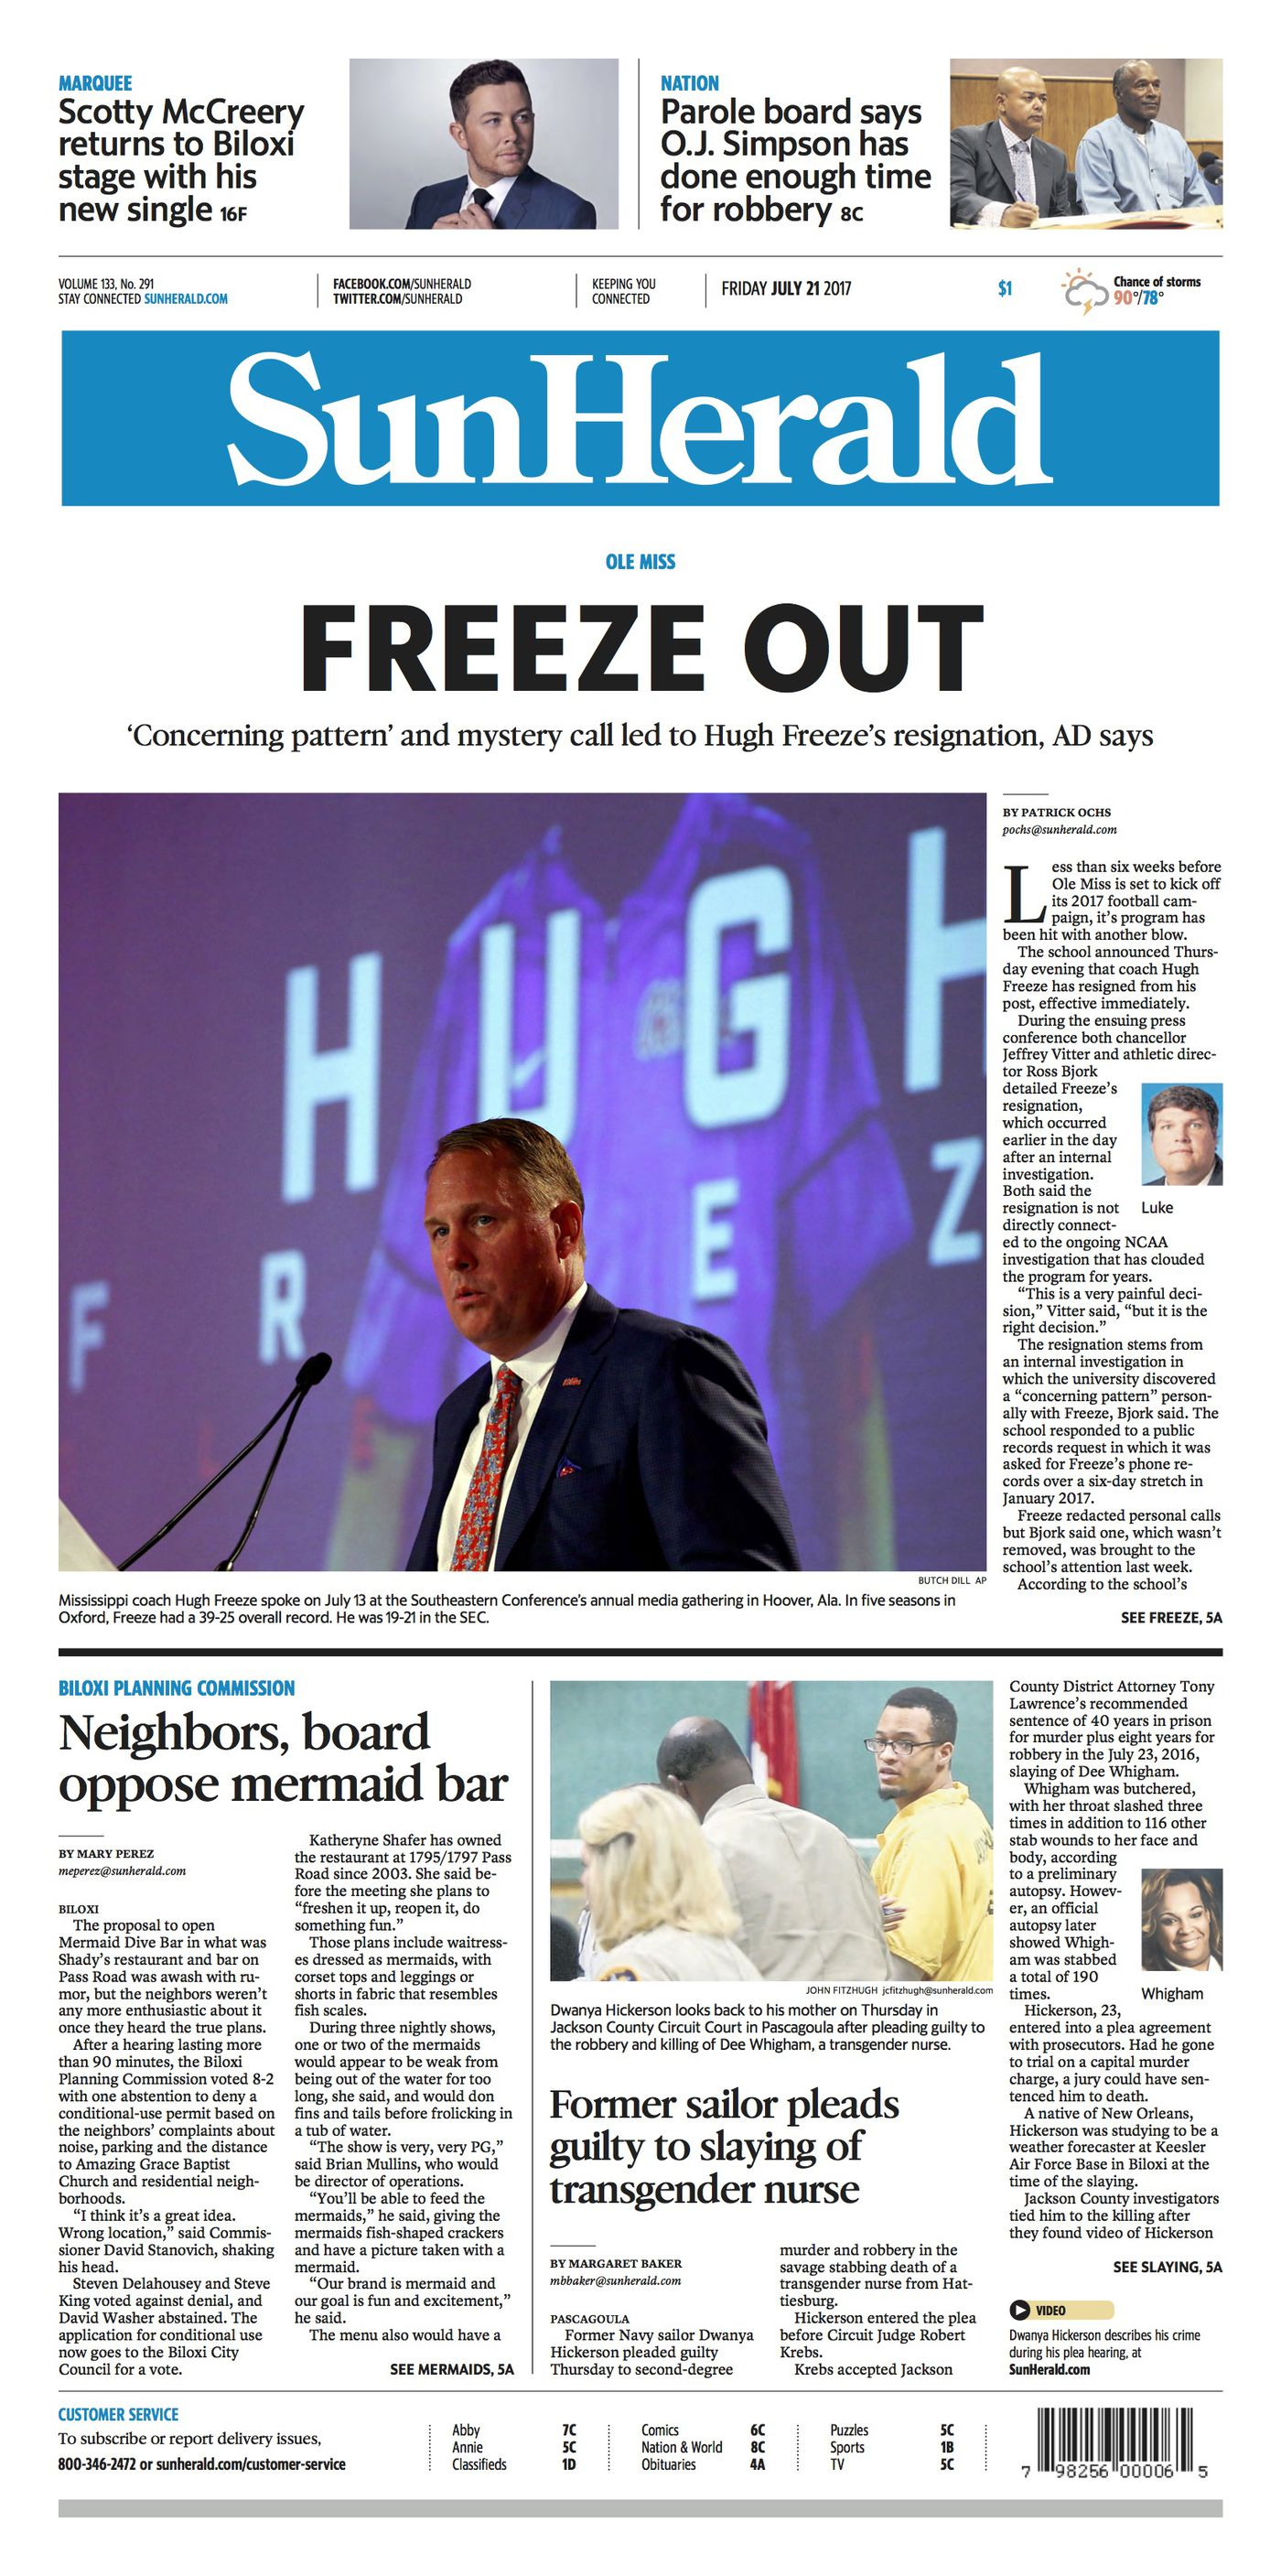 4 front pages from Hugh Freeze's Ole Miss ouster, ranked by